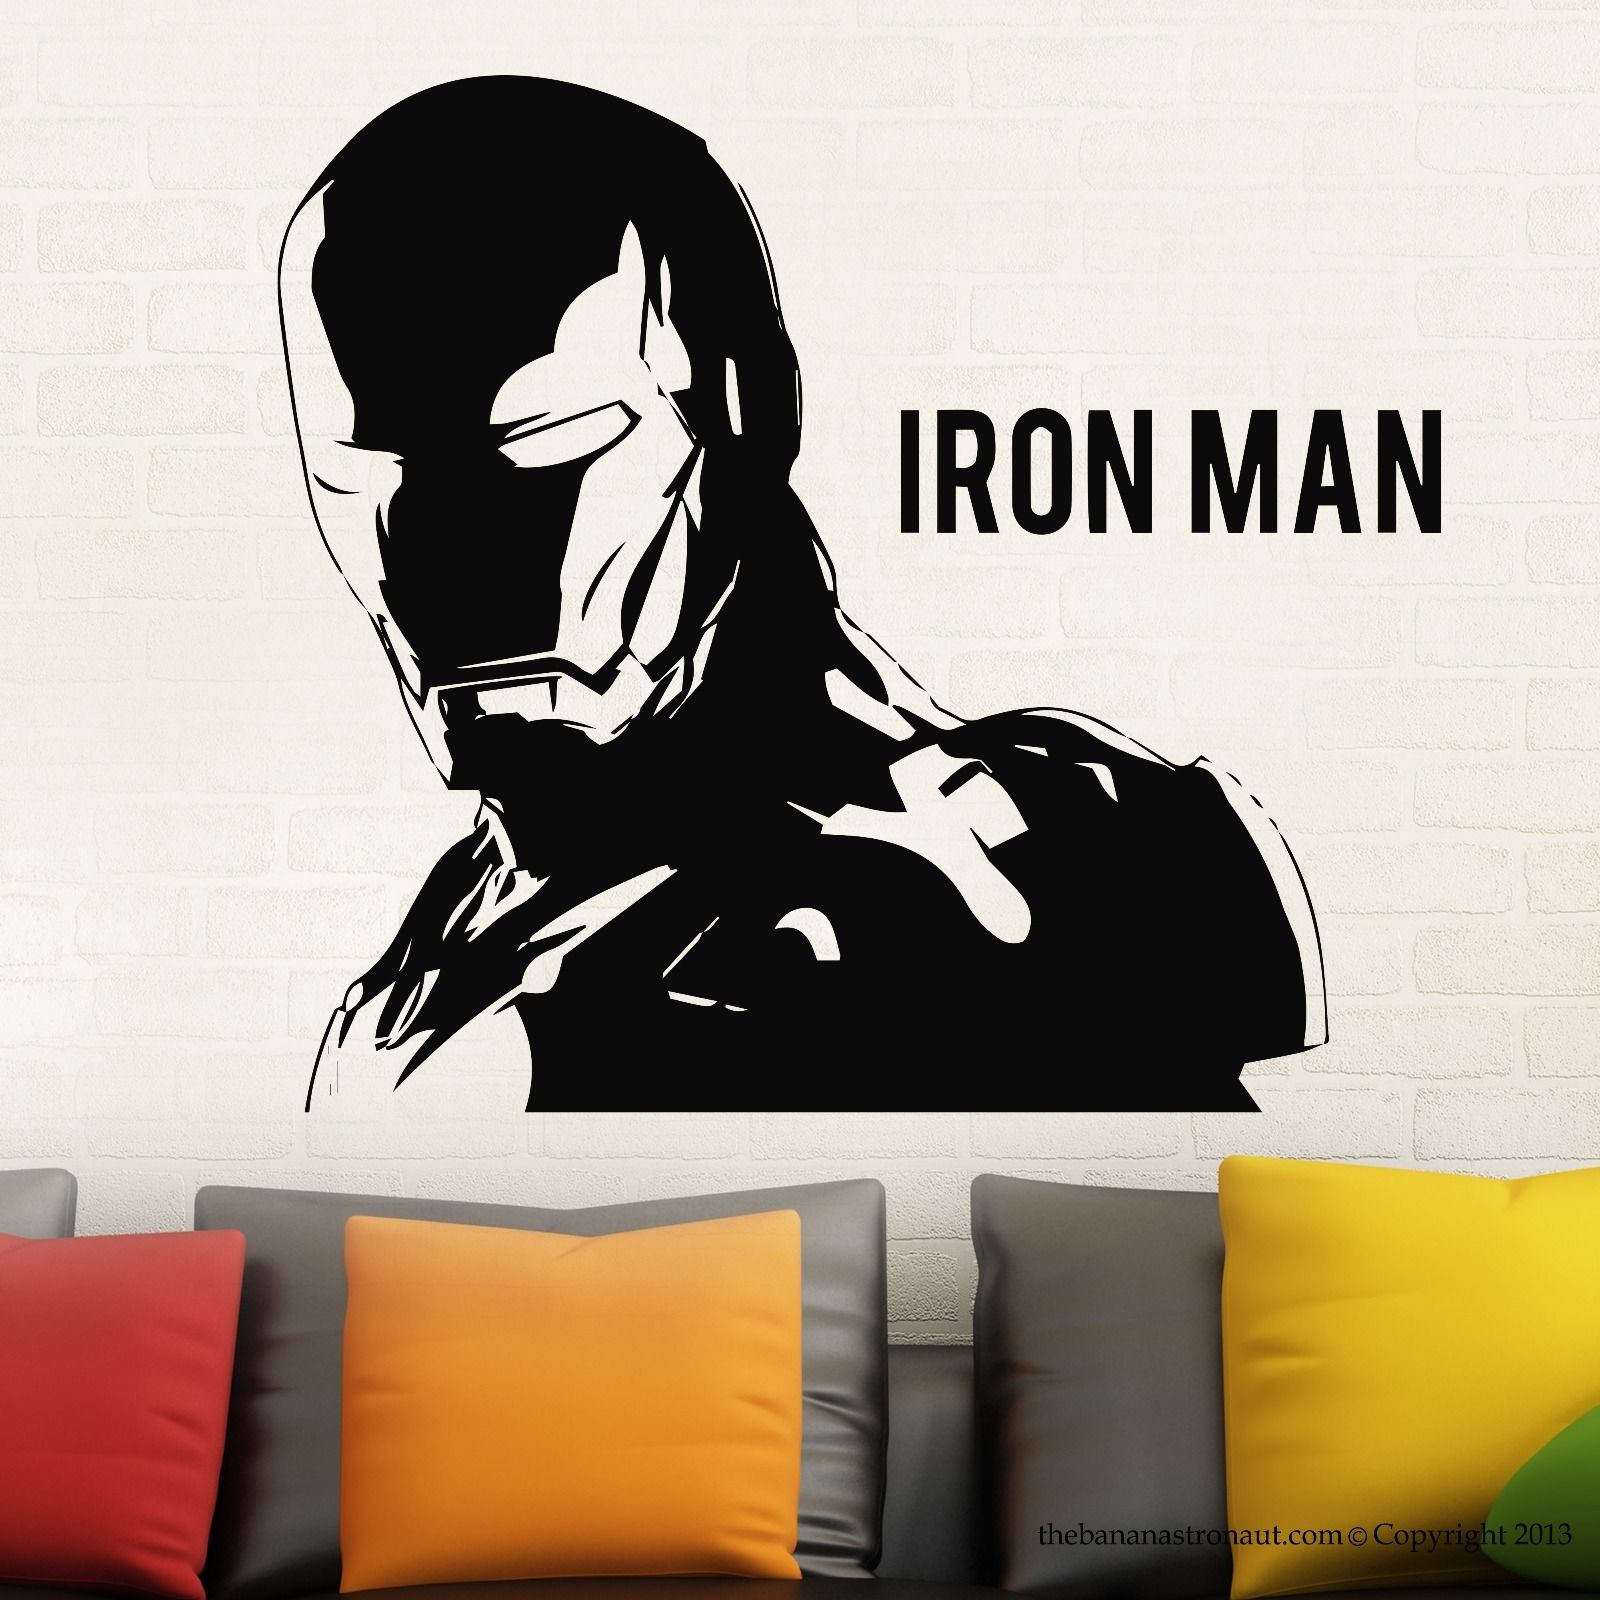 IRONMAN Wall Decal Stickers Marvel Comics Decor Modern Stickers Vinyl Black Free Shipping